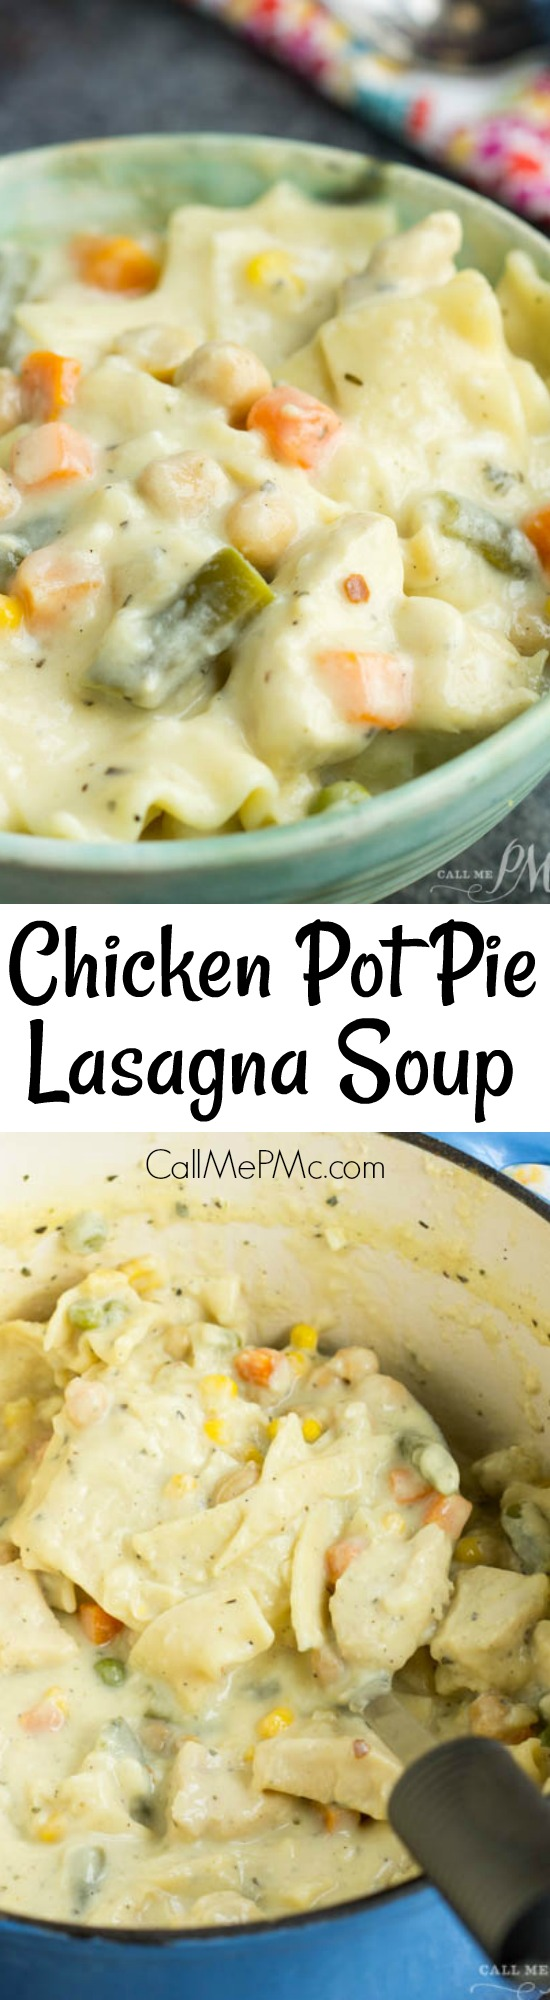 Comfort food. Chicken Pot Pie Lasagna Soup Recipe is an easy one-pot soup recipe your entire family will love!This is the perfect mix of a hearty, comfortingchicken pot pie, lasagna, and soup all in one dish.